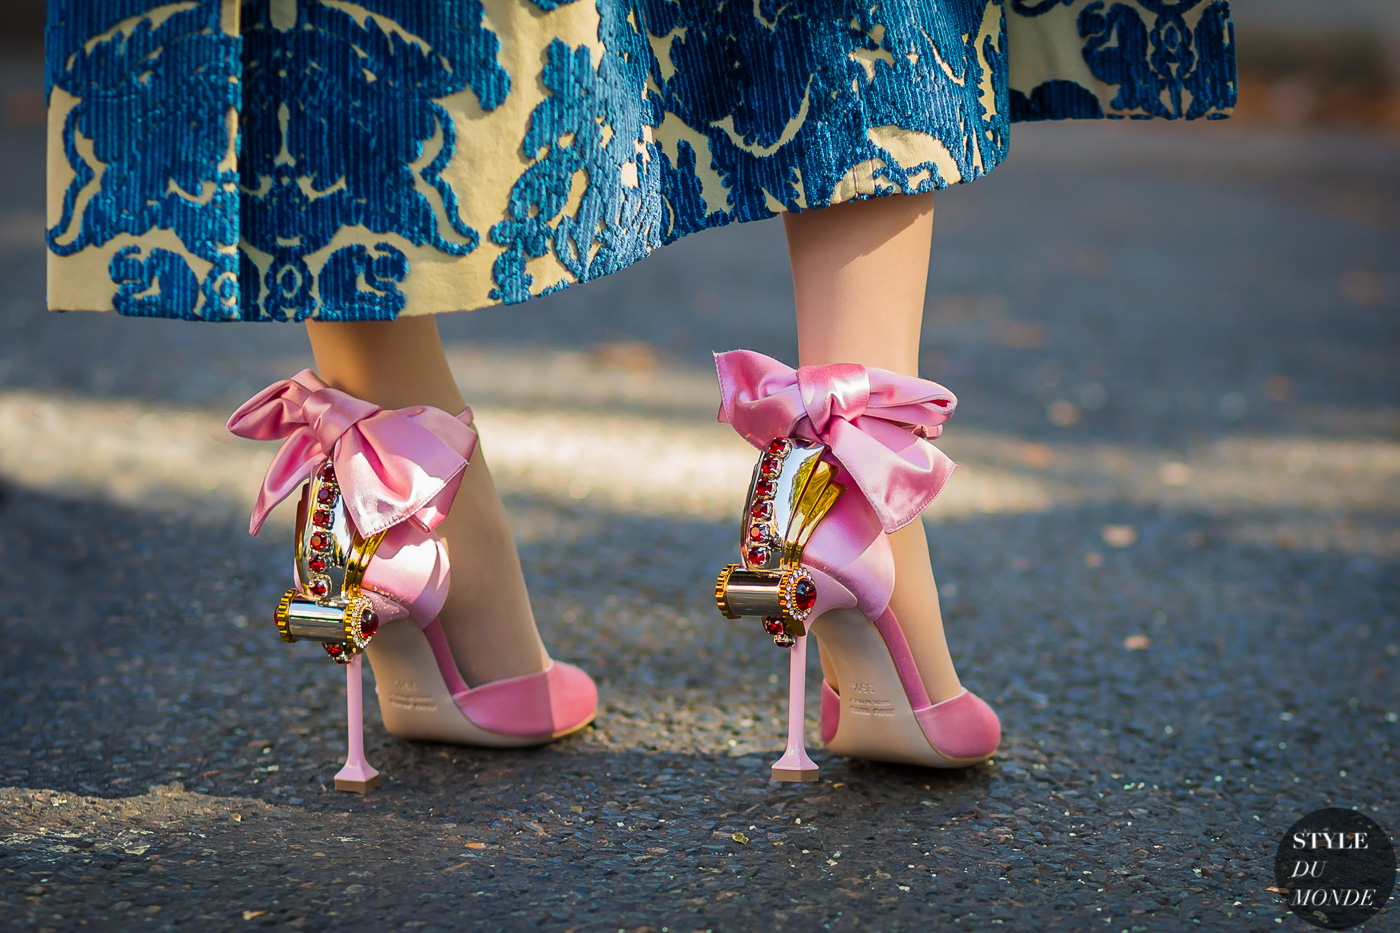 Miu Miu shoes by STYLEDUMONDE Street Style Fashion Photography